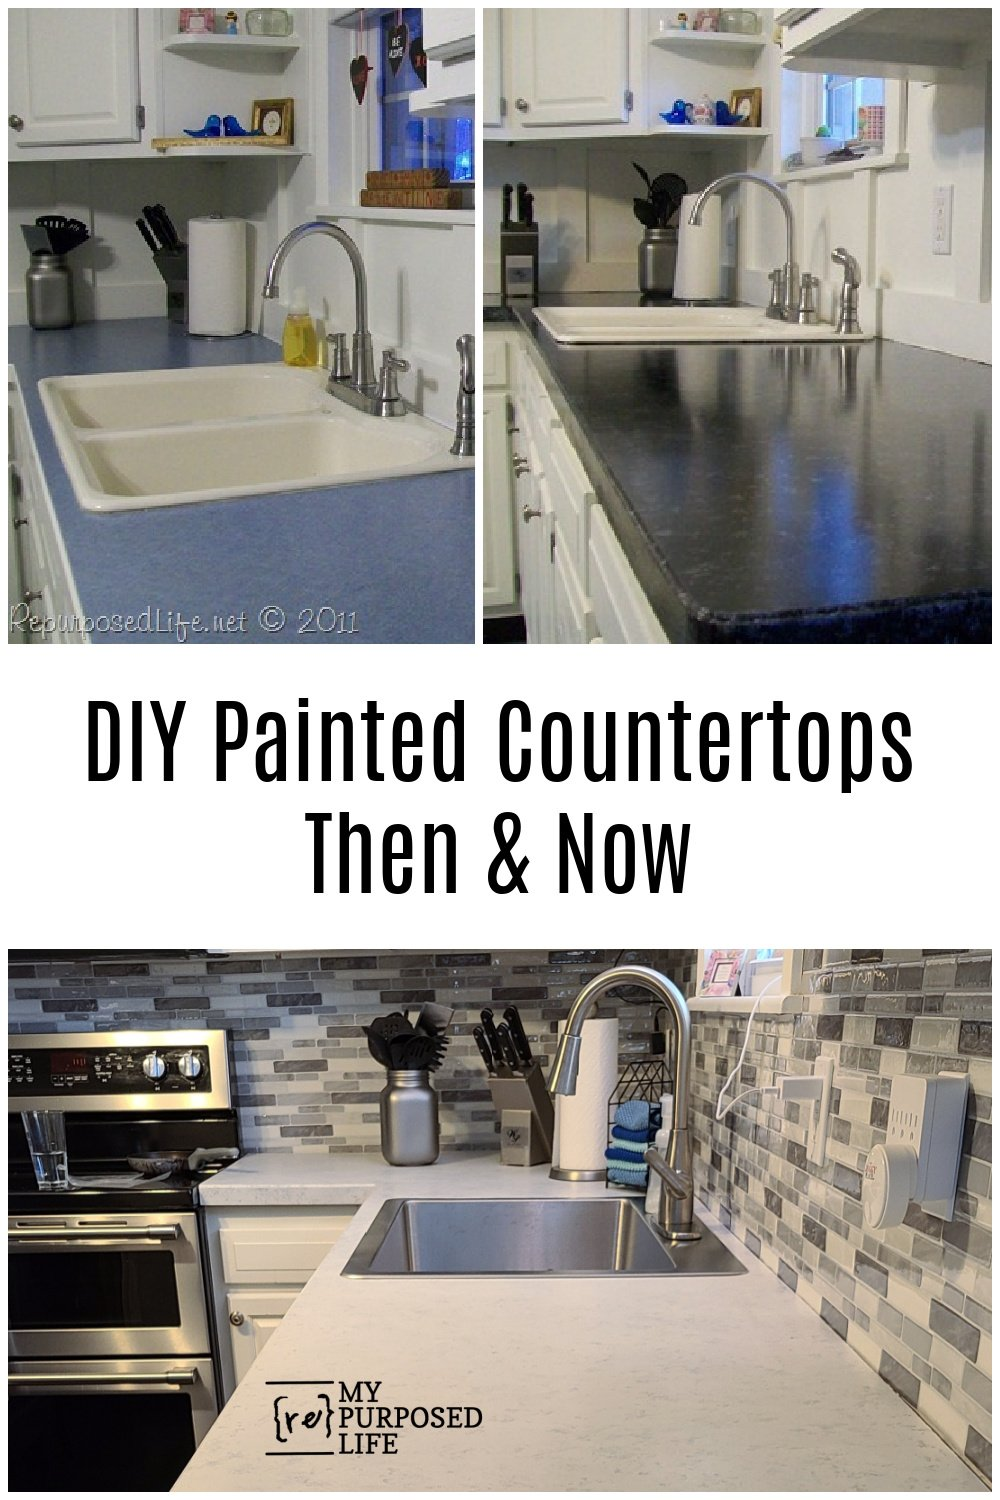 Painted years ago, I decided to do it again! Painted kitchen countertops tips and tricks to revive an outdated kitchen. It's so easy! #MyRepurposedLife #paint #kitchen #countertops #diy #htp #allinonepaint via @repurposedlife